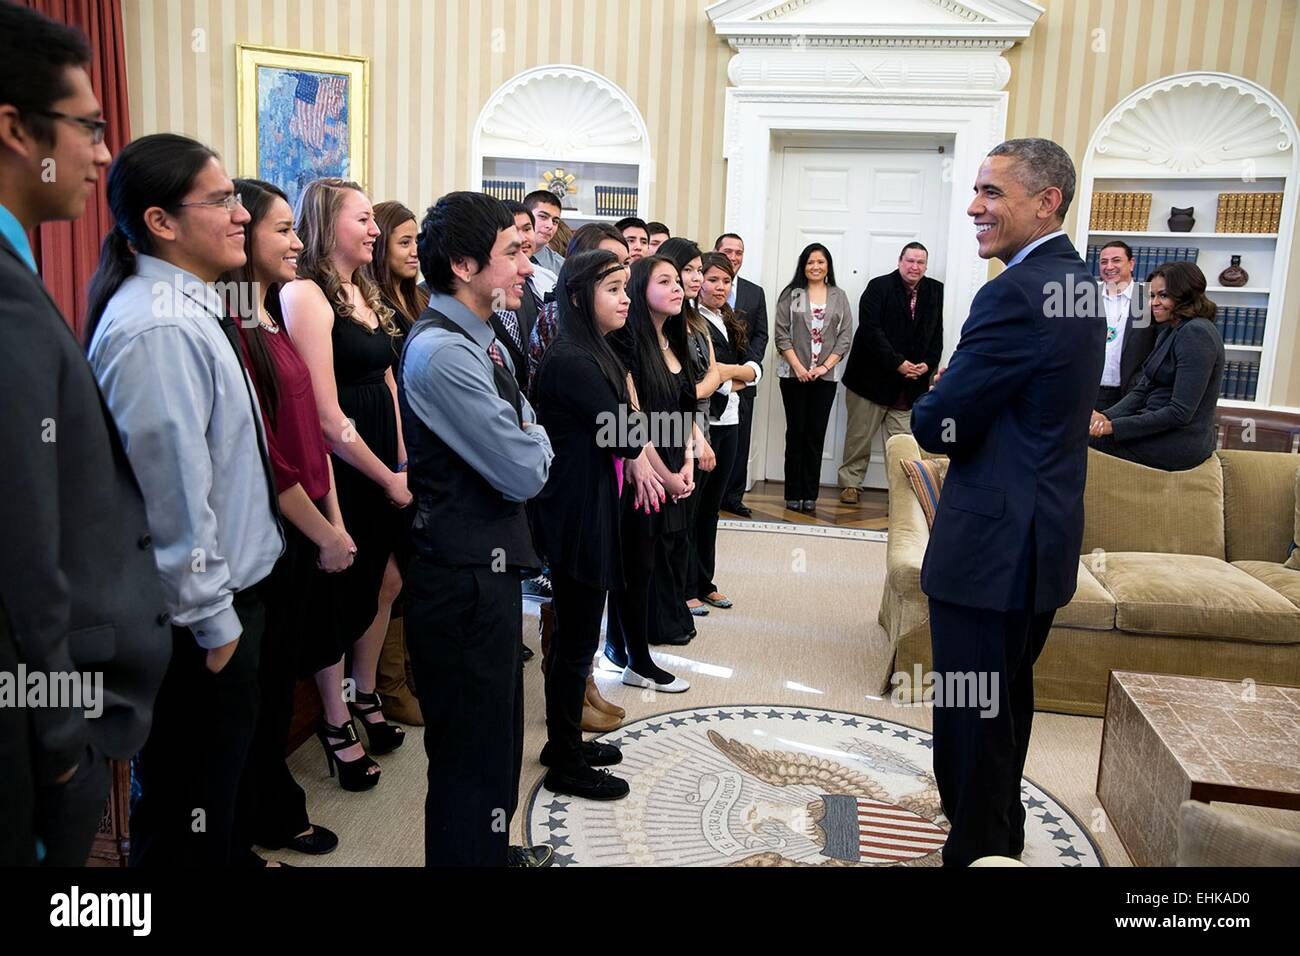 US President Barack Obama talks with youth from the Standing Rock Sioux Tribe in the Oval Office of the White House - Stock Image